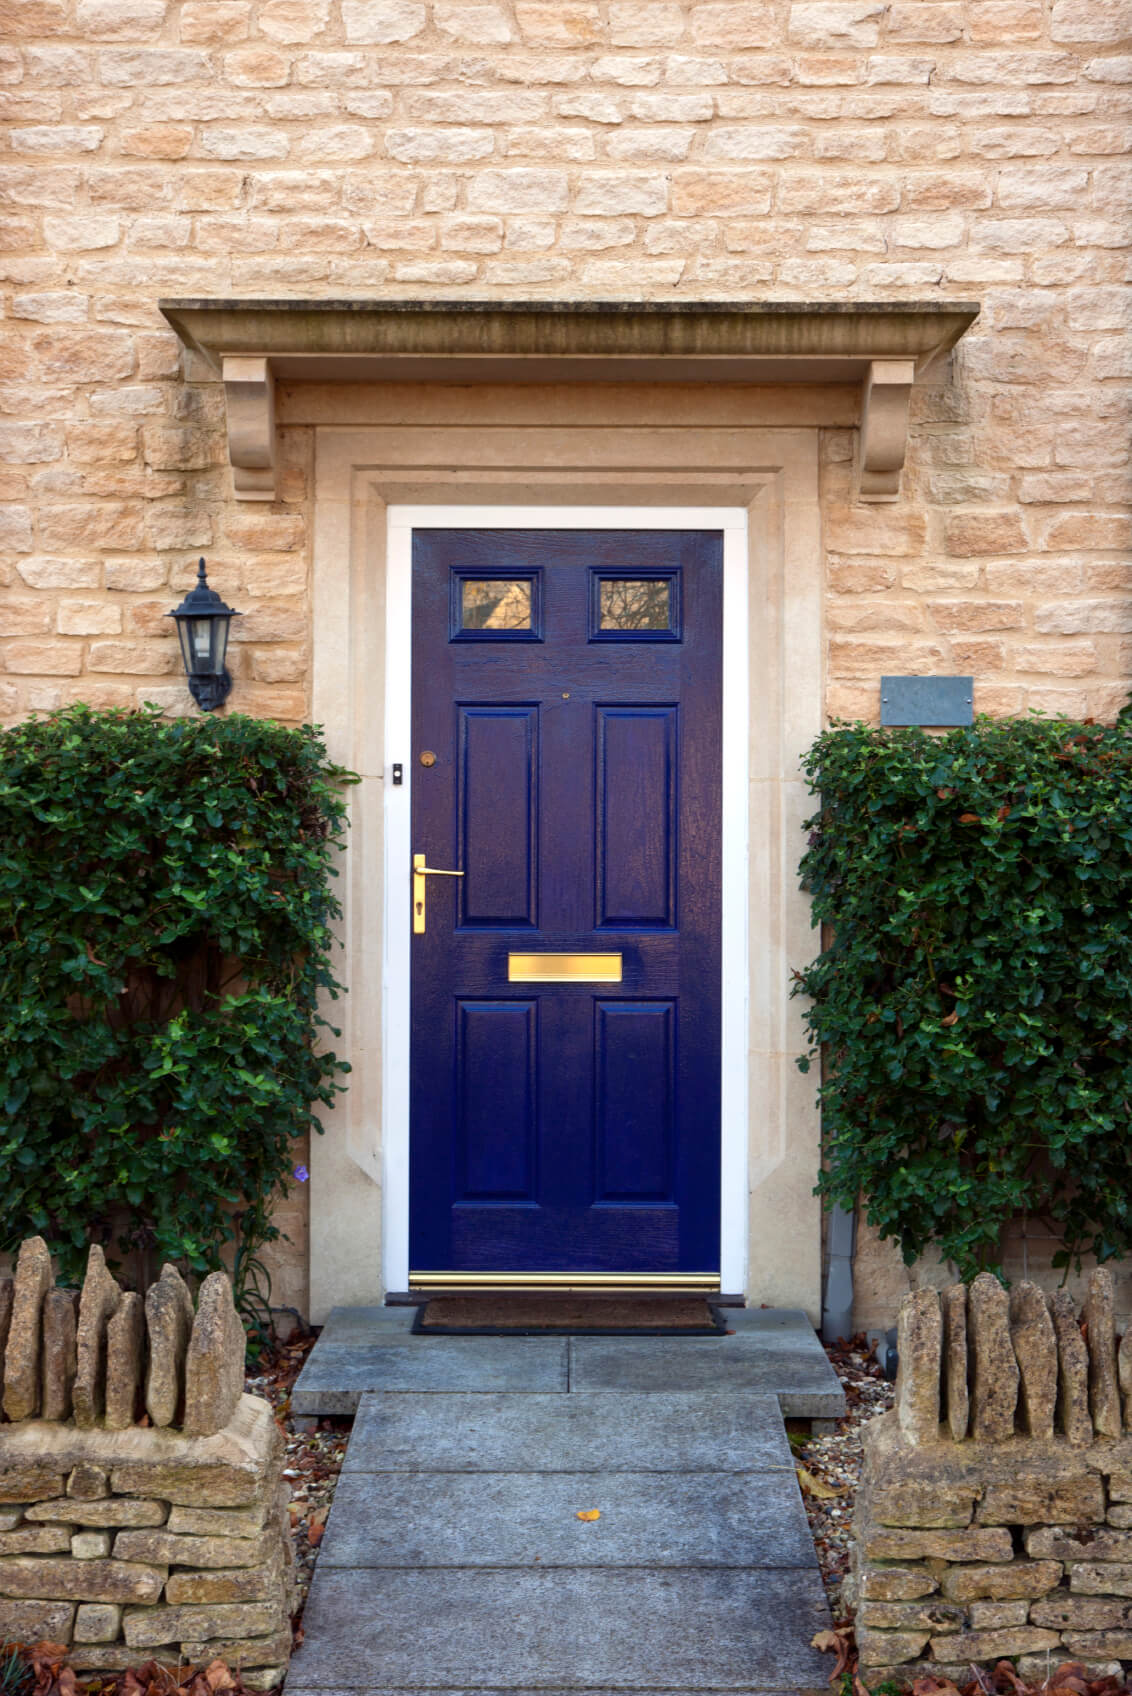 This Home Has A Stone Front Exterior. It Has A Blue Wooden Door With Glass